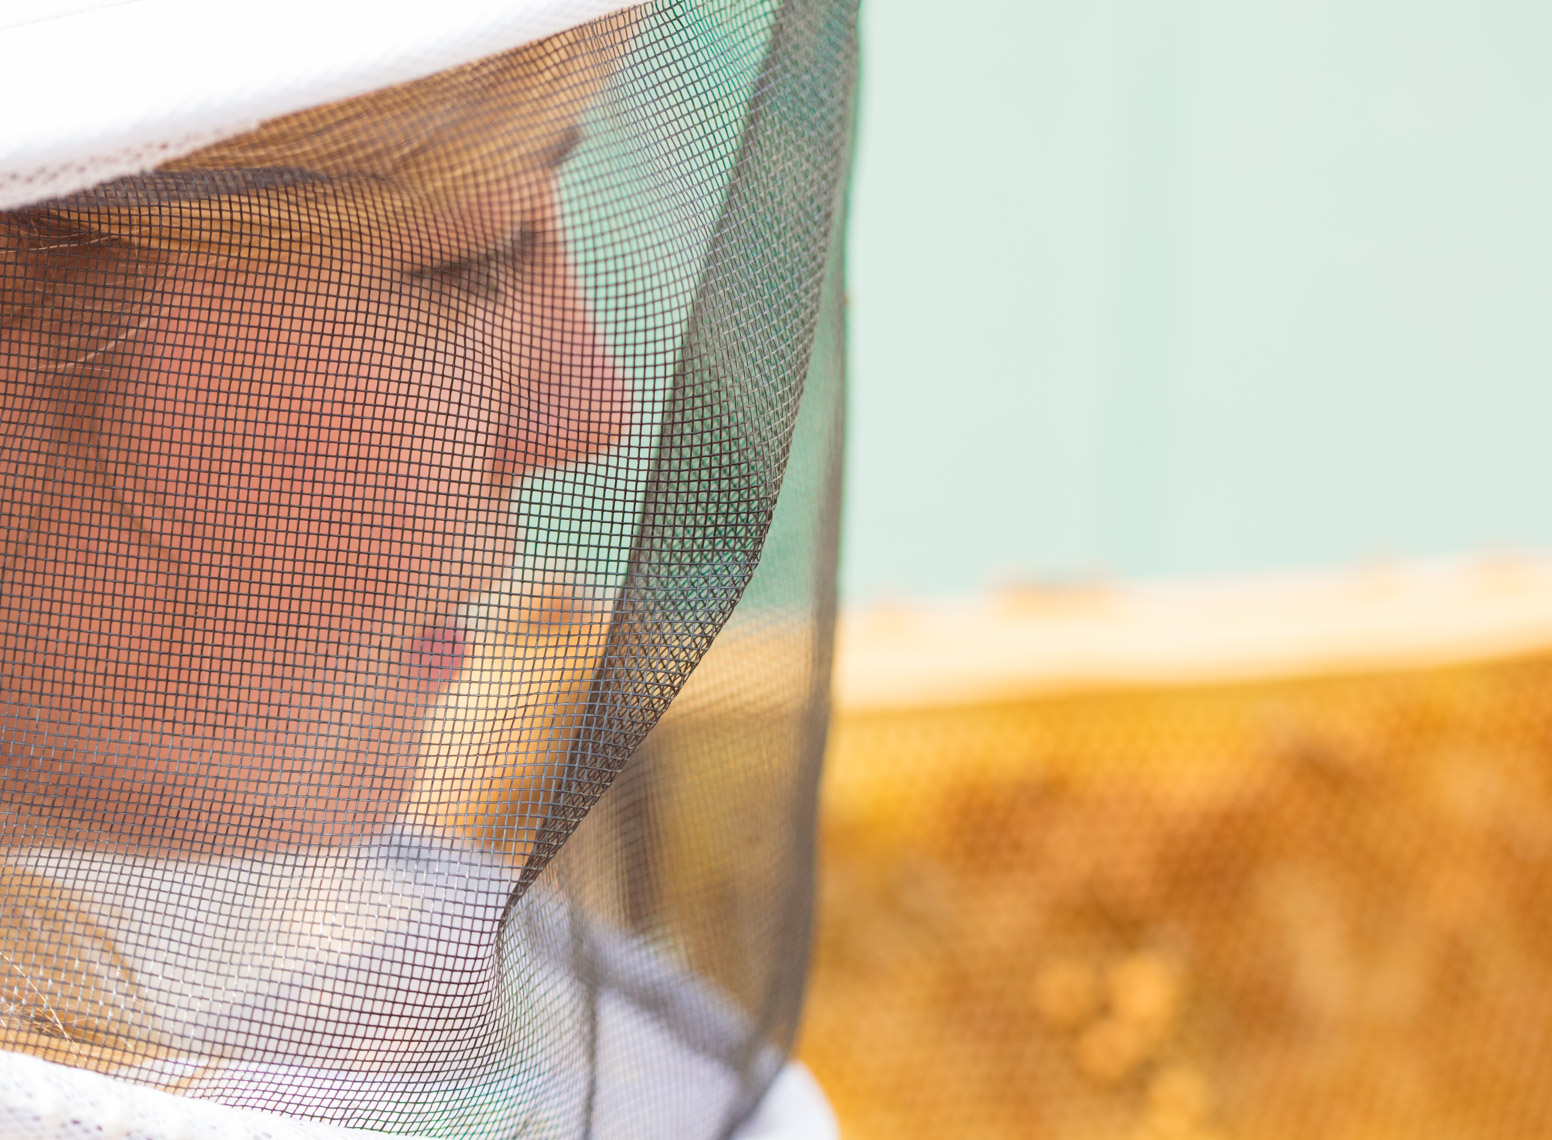 Female beekeeper beauty | Austin Lifestyle Photographer